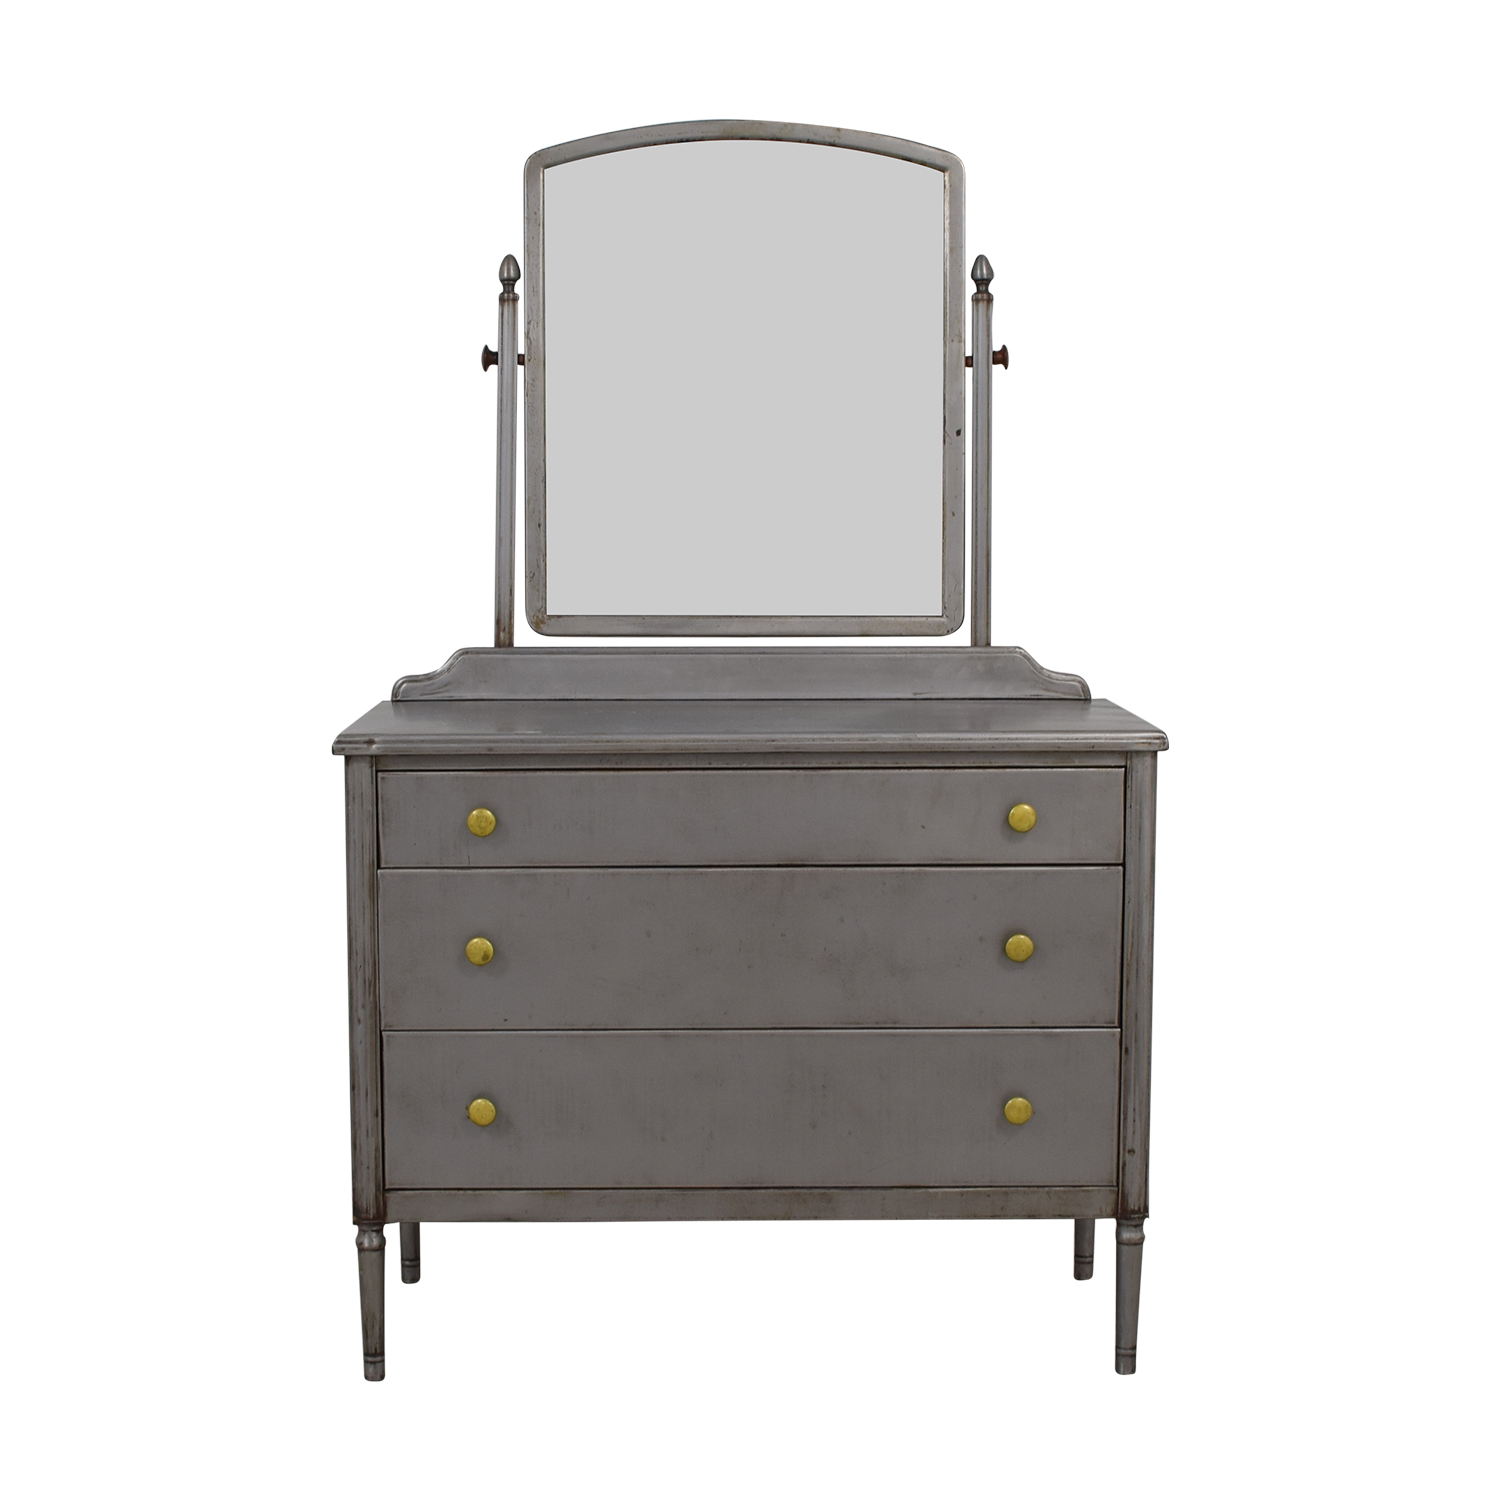 Simmons Simmons Antique Refinished Industrial Metal Dresser with Mirror for sale